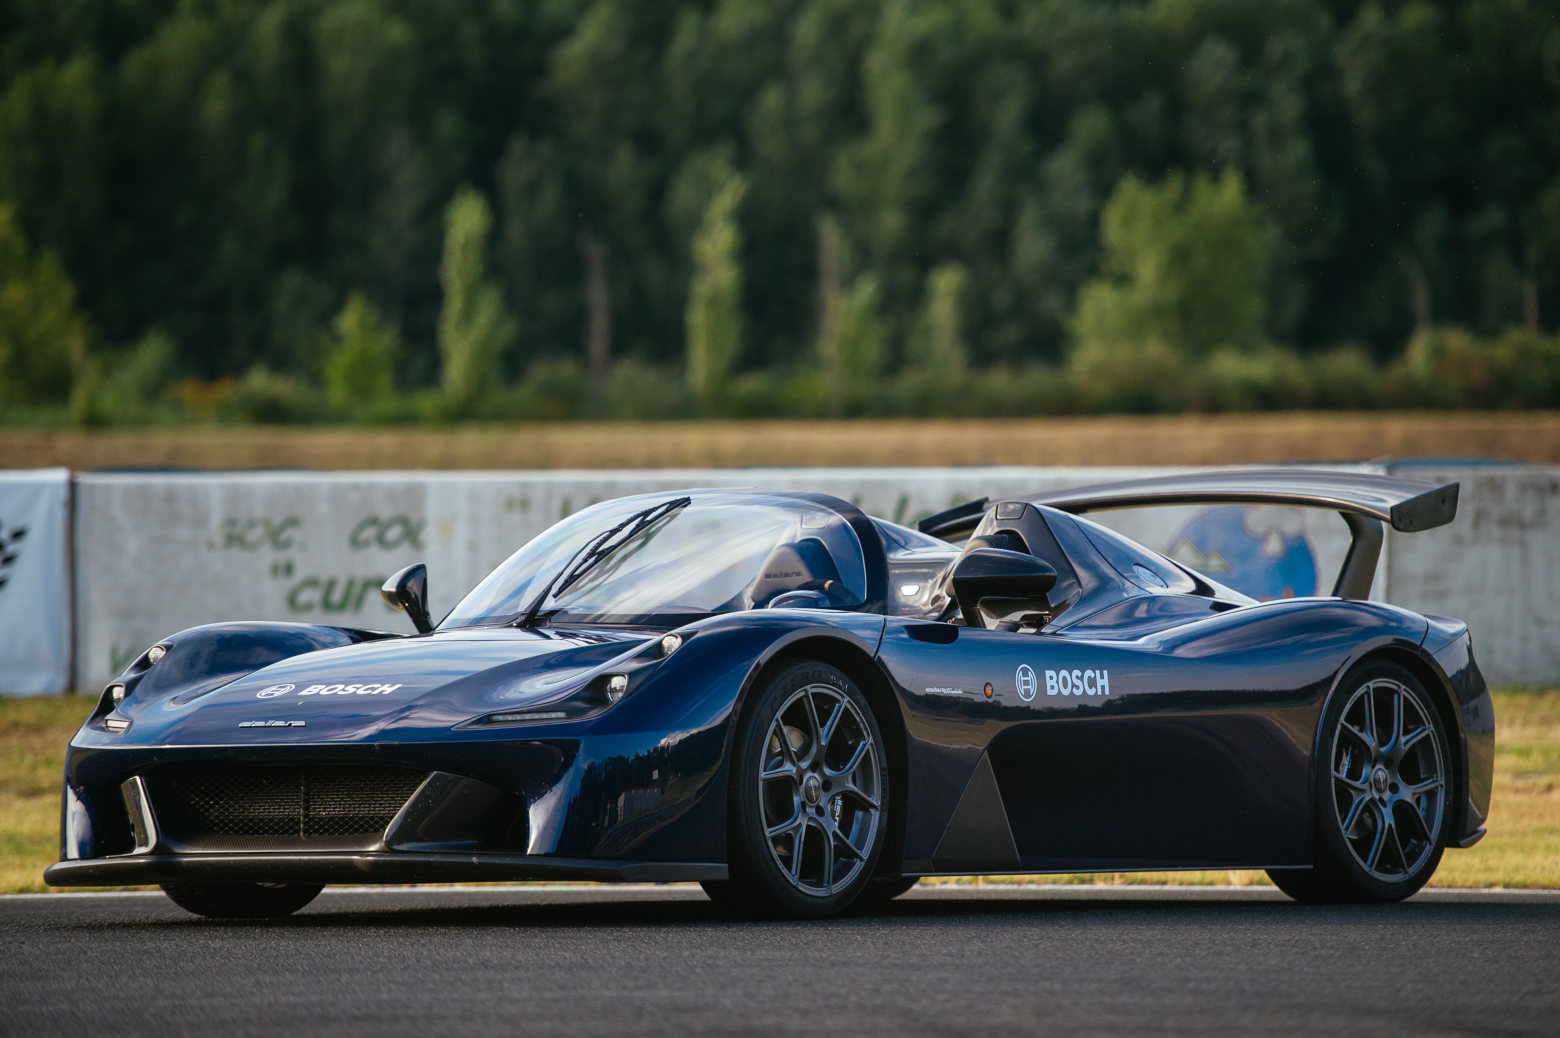 Blue Dallara Stradale with optional wing and Bosch livery.